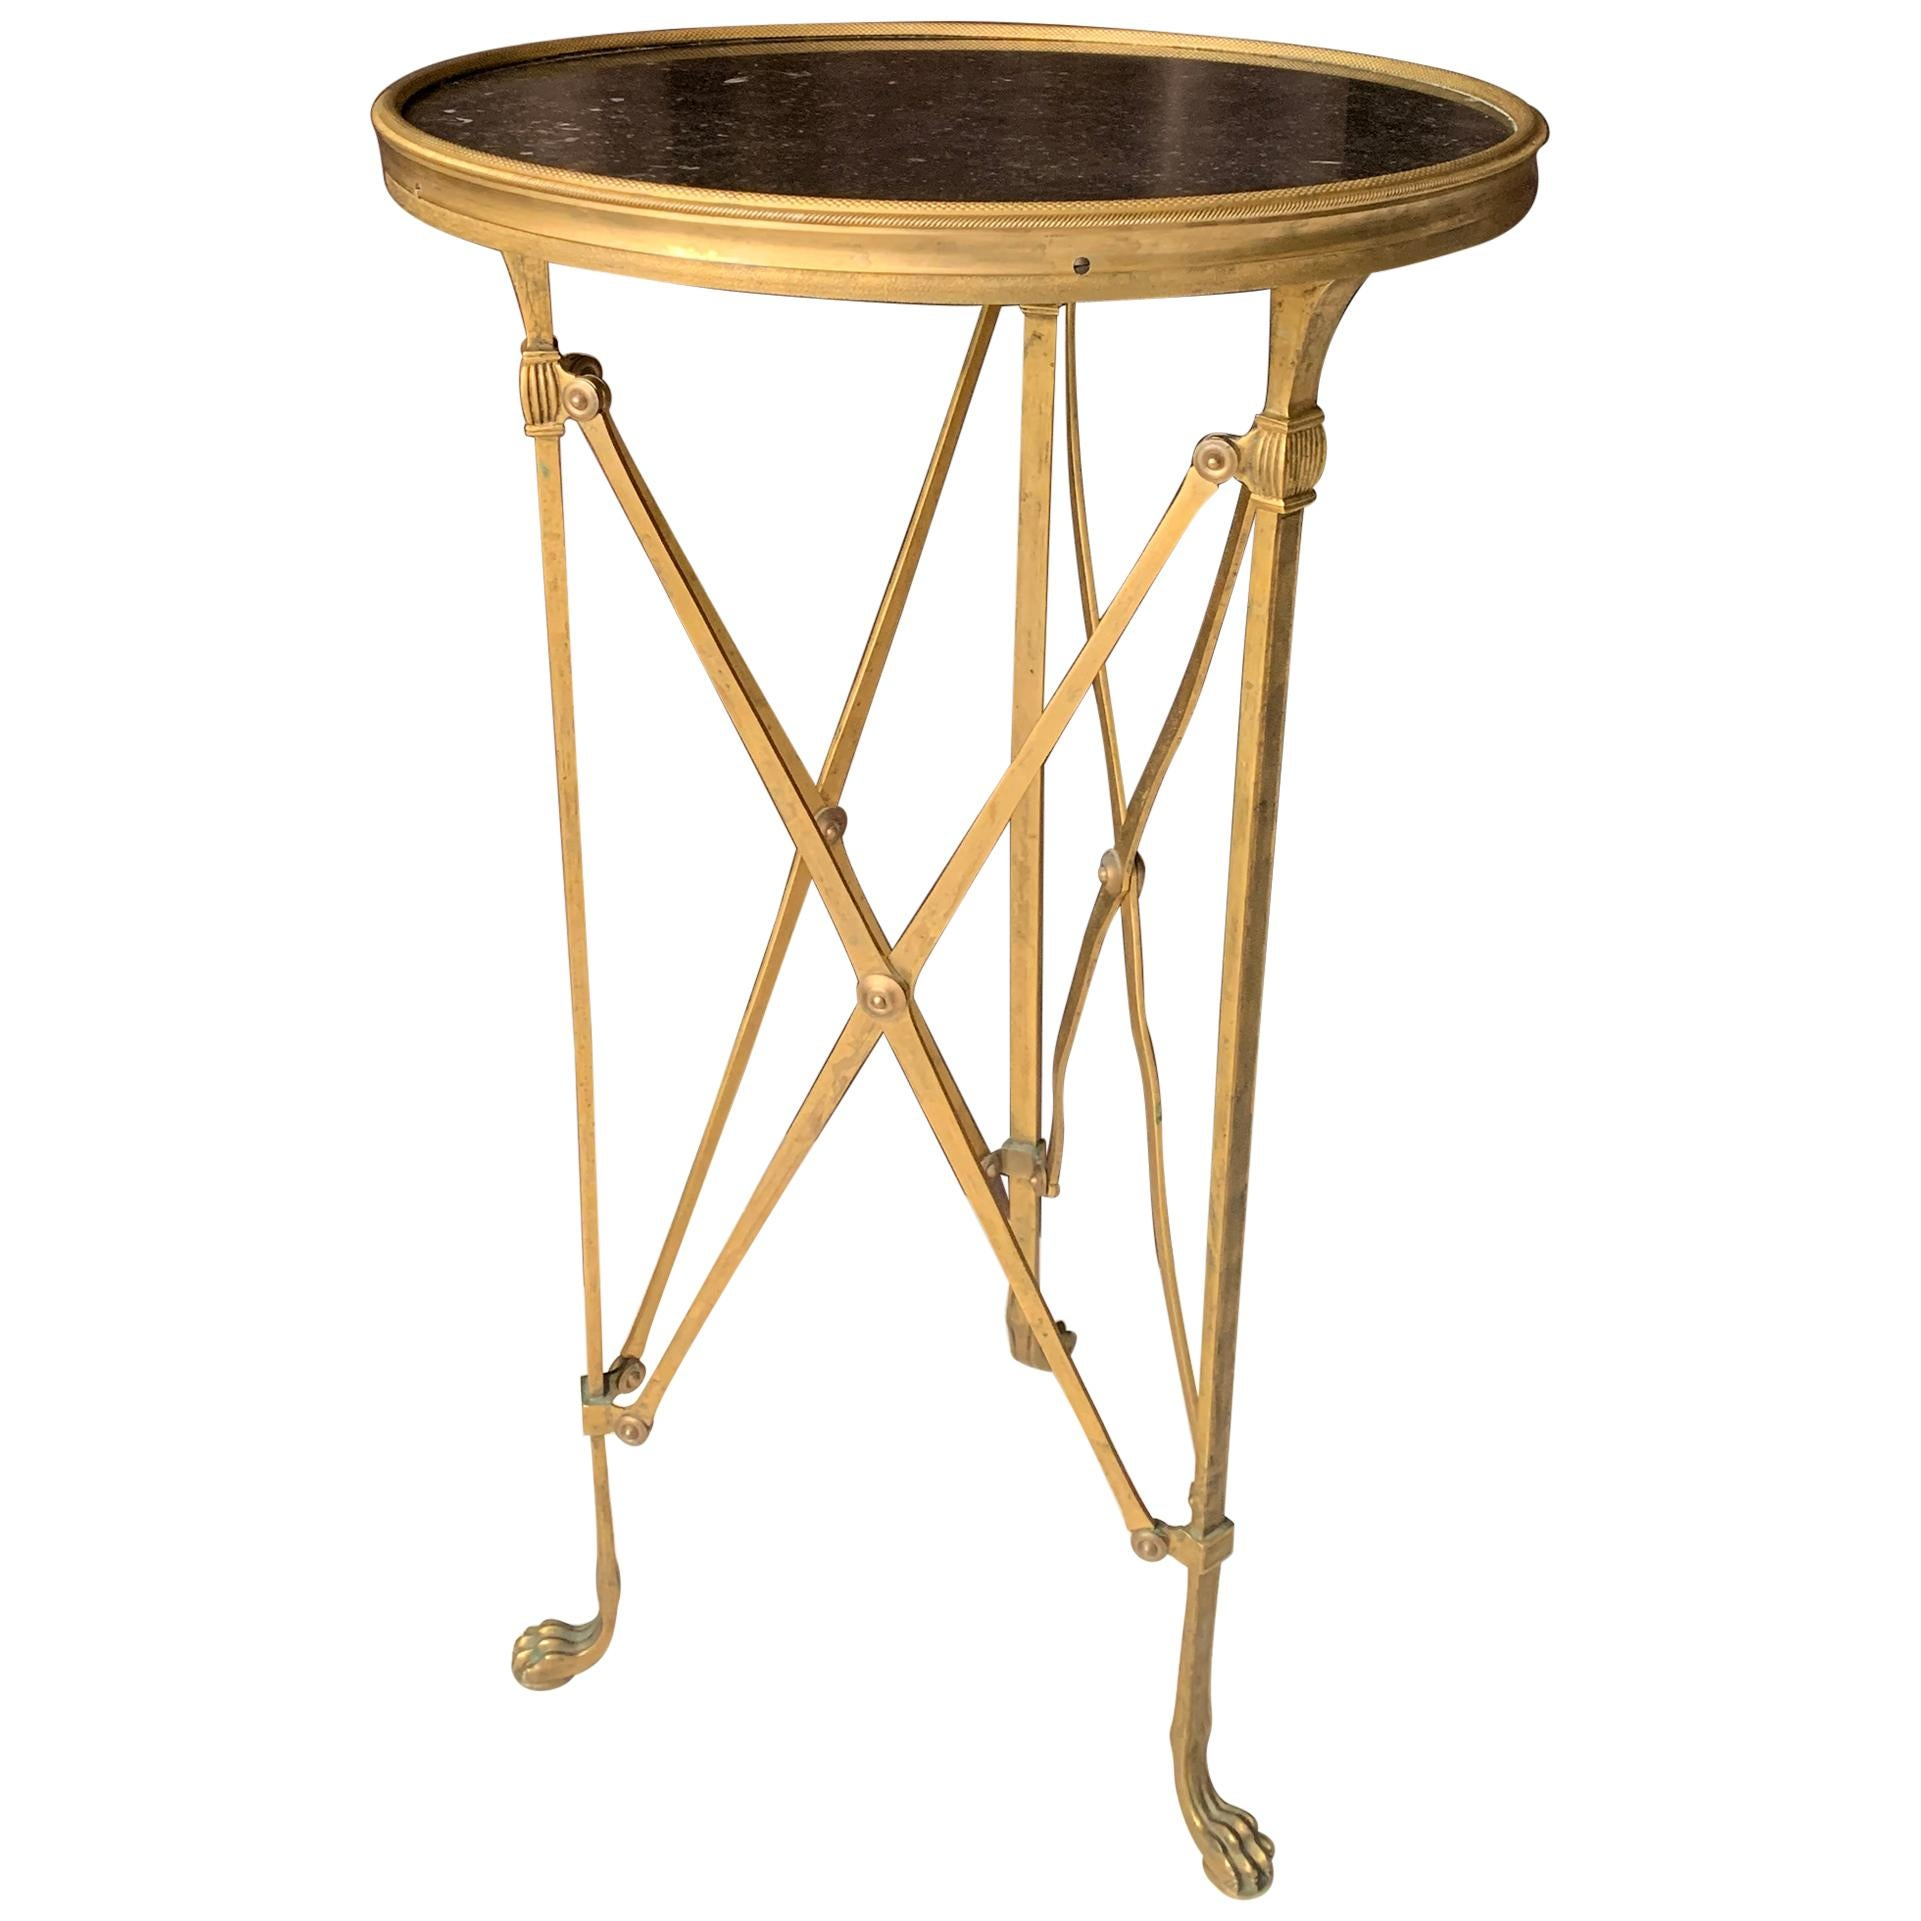 Brass and Stone Neoclassical Guéridon Style Side Table